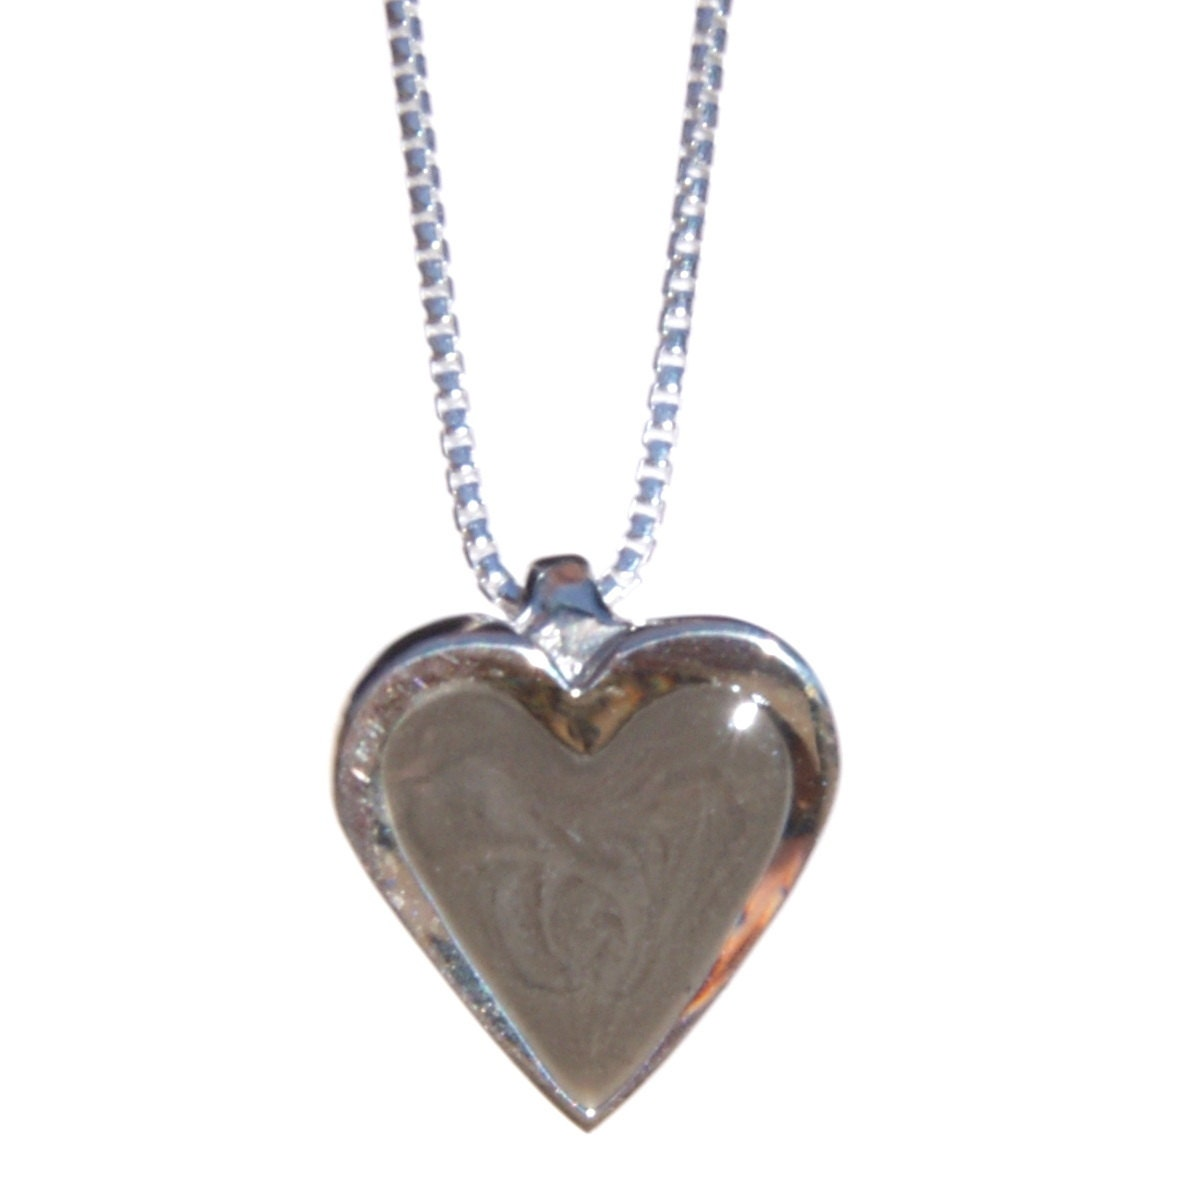 solidified cremation jewelry tiny pendant by closebyme